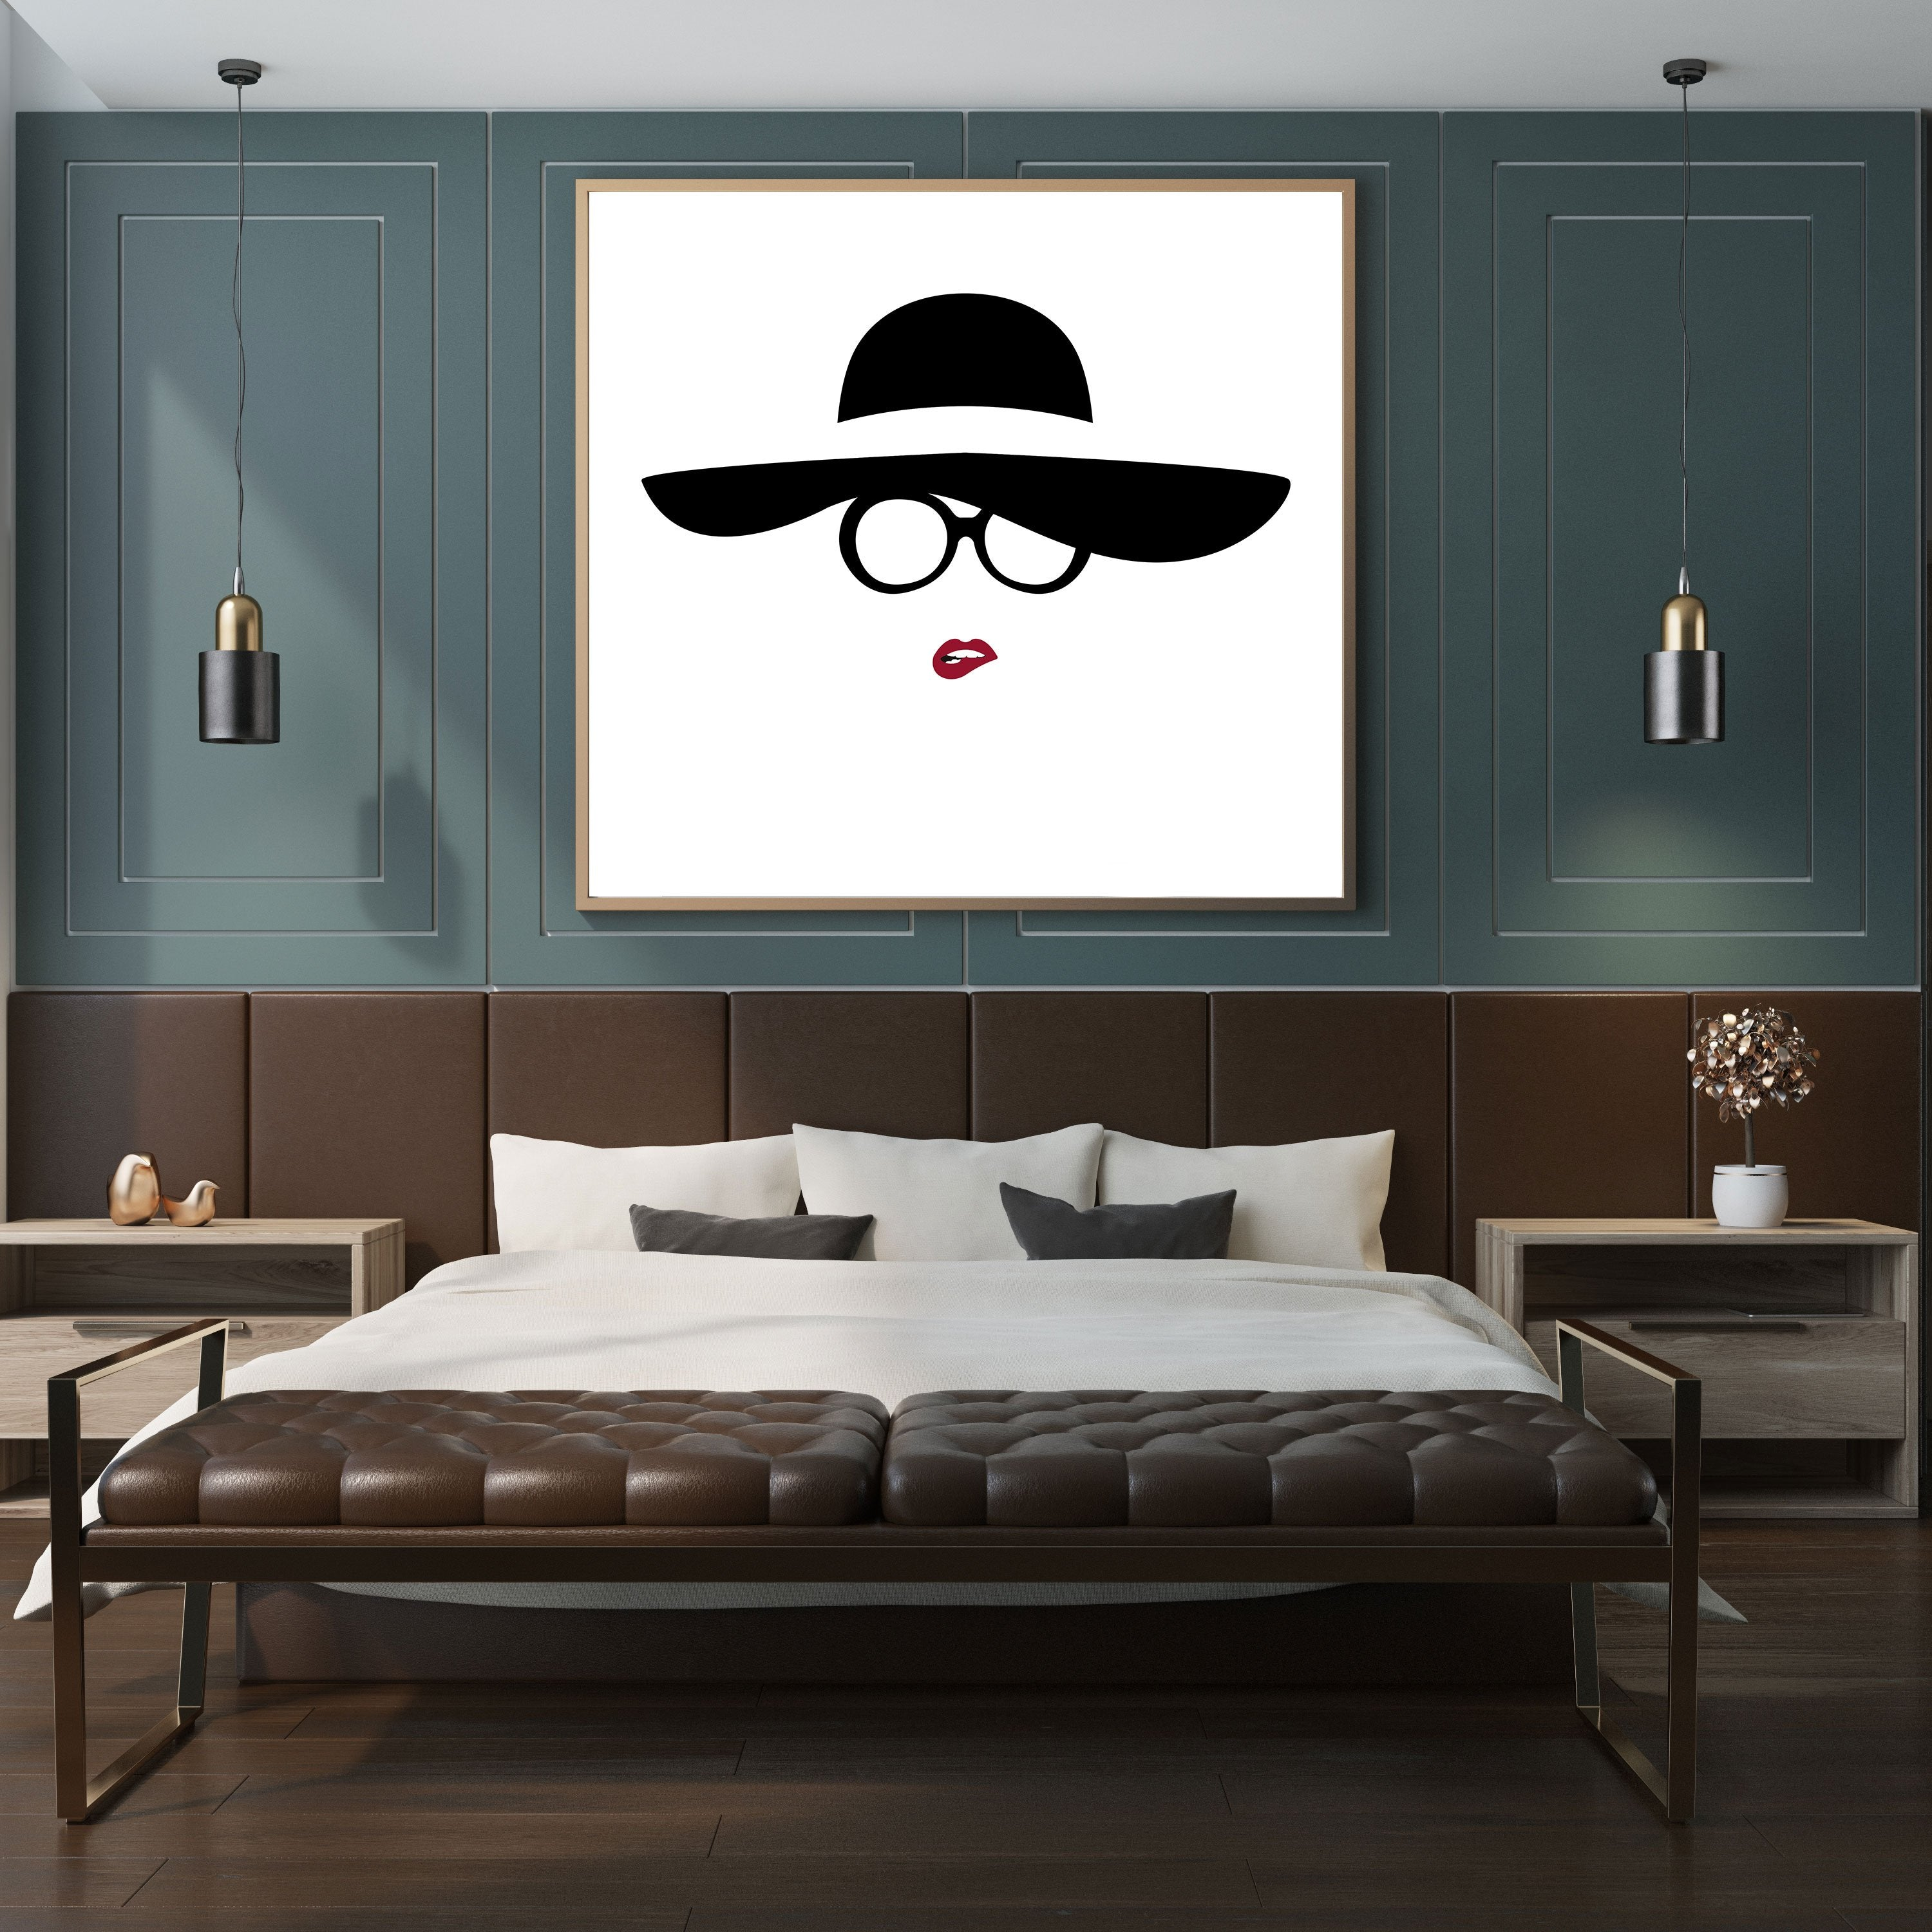 Abstract print with a lady's black hat, eyeglasses and red biting lips, framed